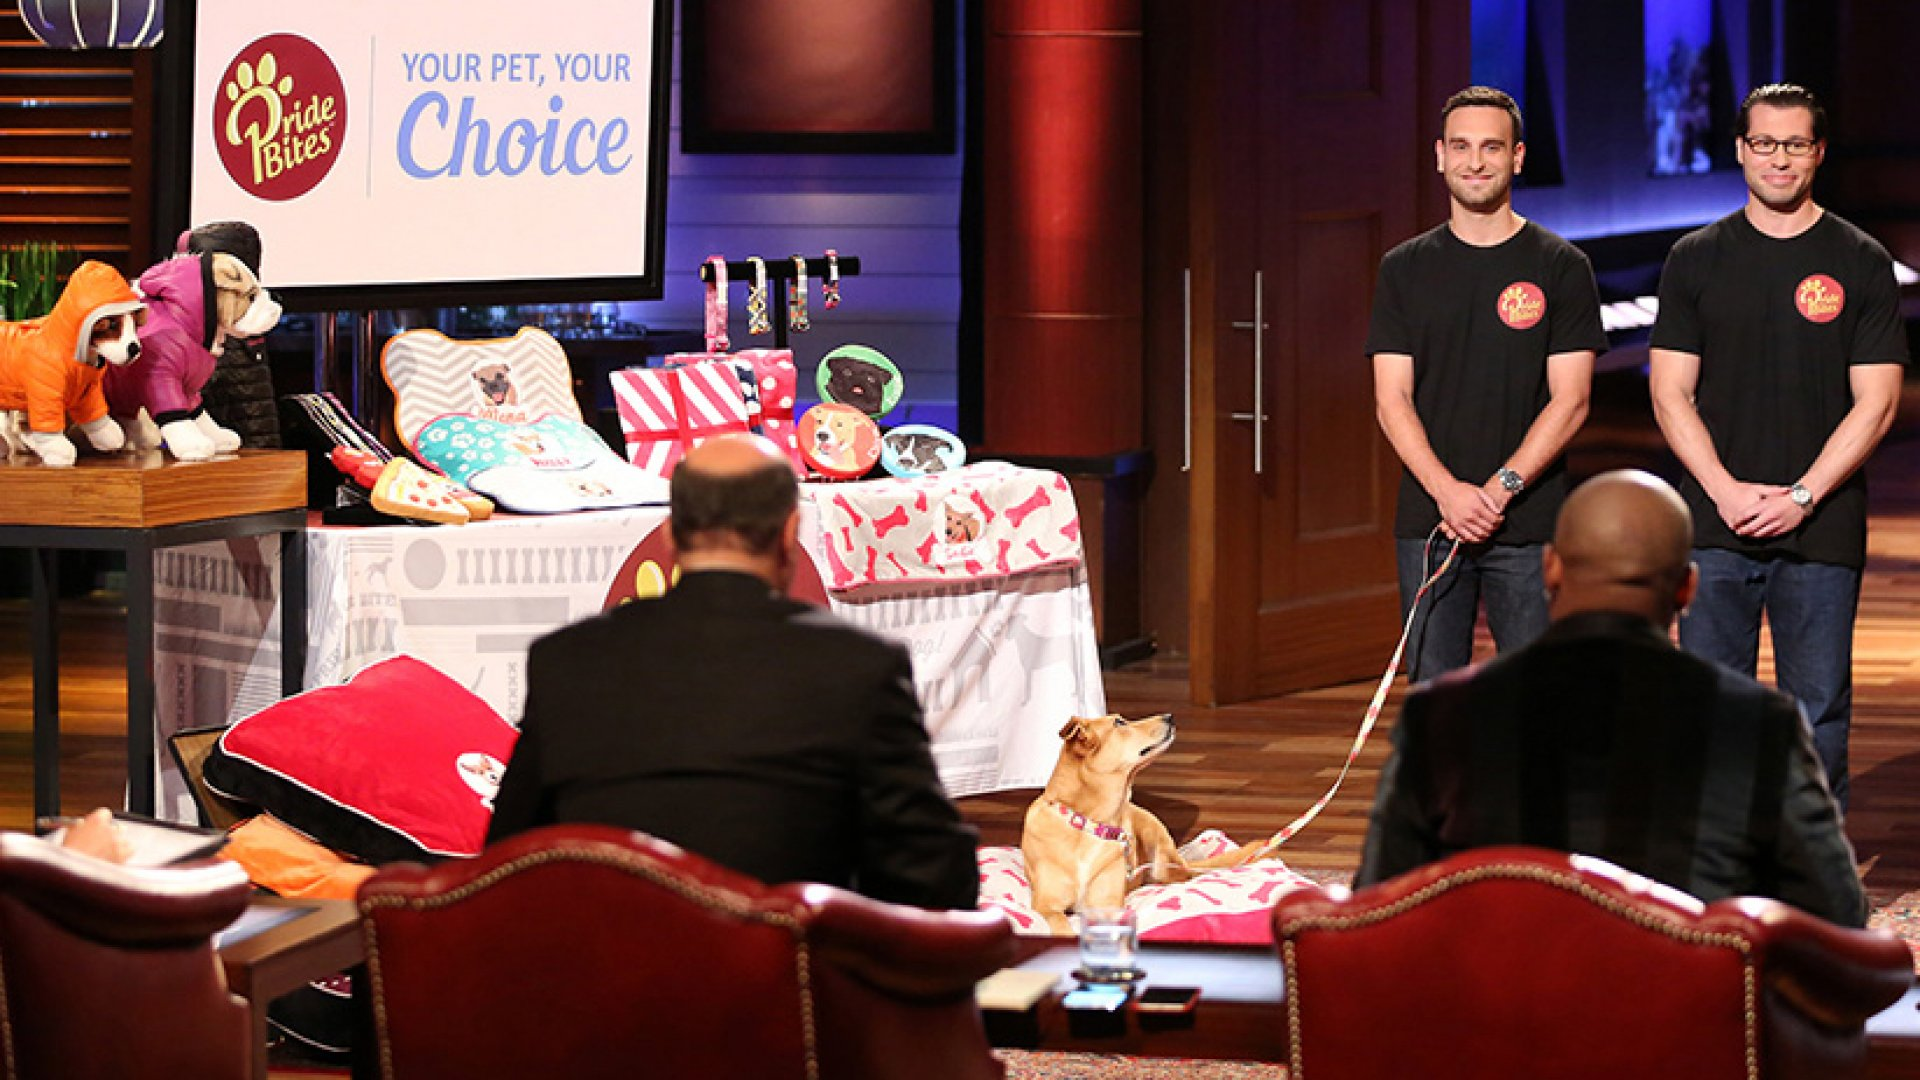 PrideBites co-founders Sean Knecht (left) and Steven Blustein on ABC's Shark Tank.